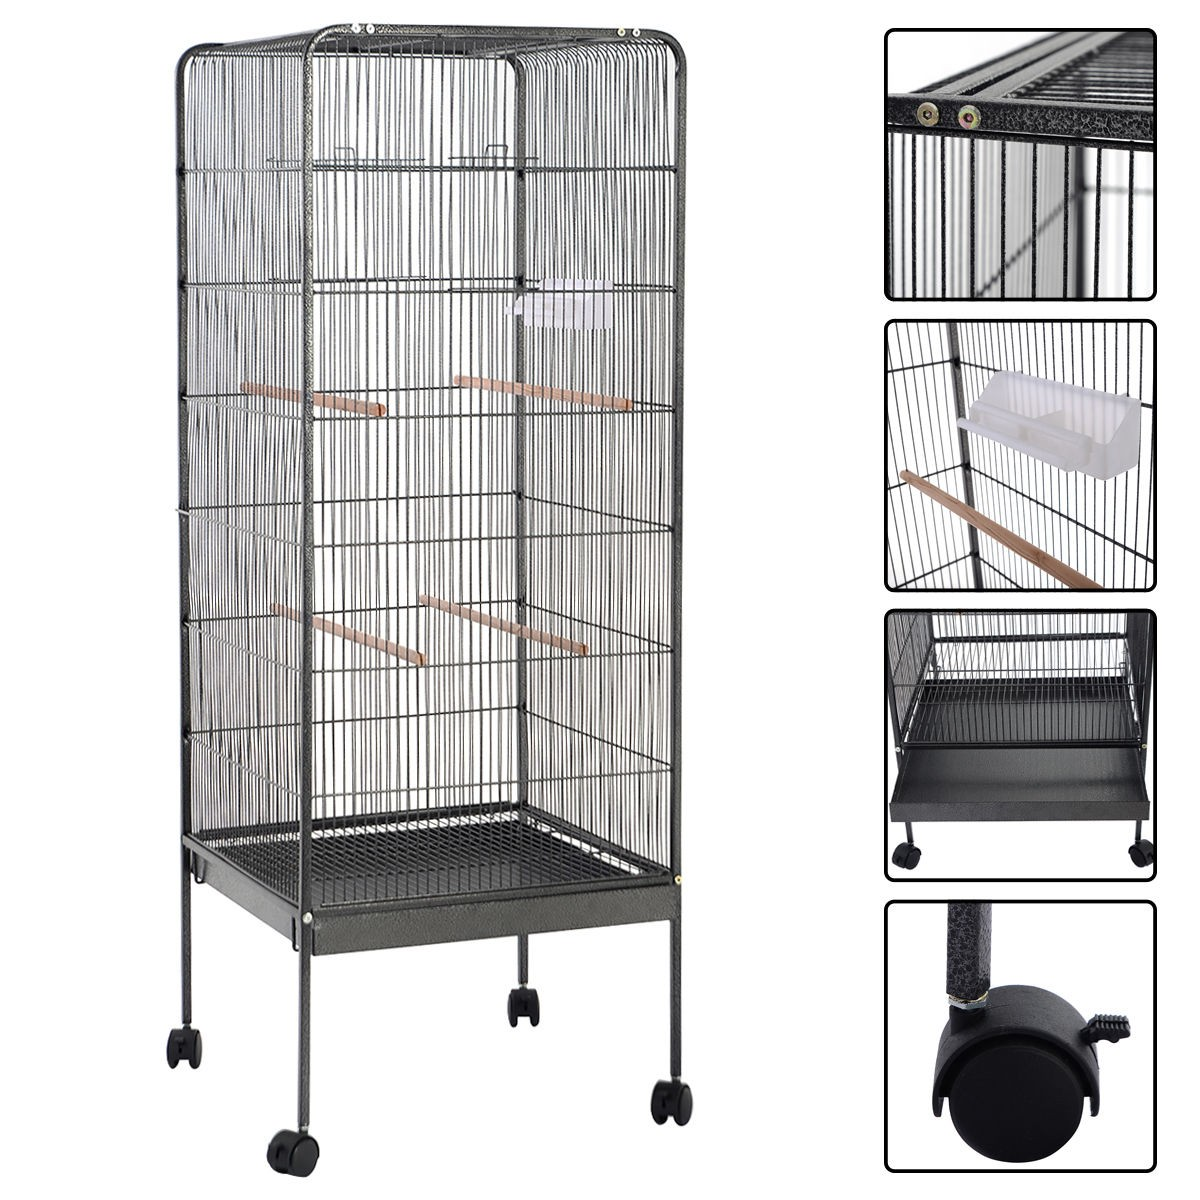 58 large play top parrot bird cage pet supplies w perch stand 2 doors flattop ebay. Black Bedroom Furniture Sets. Home Design Ideas